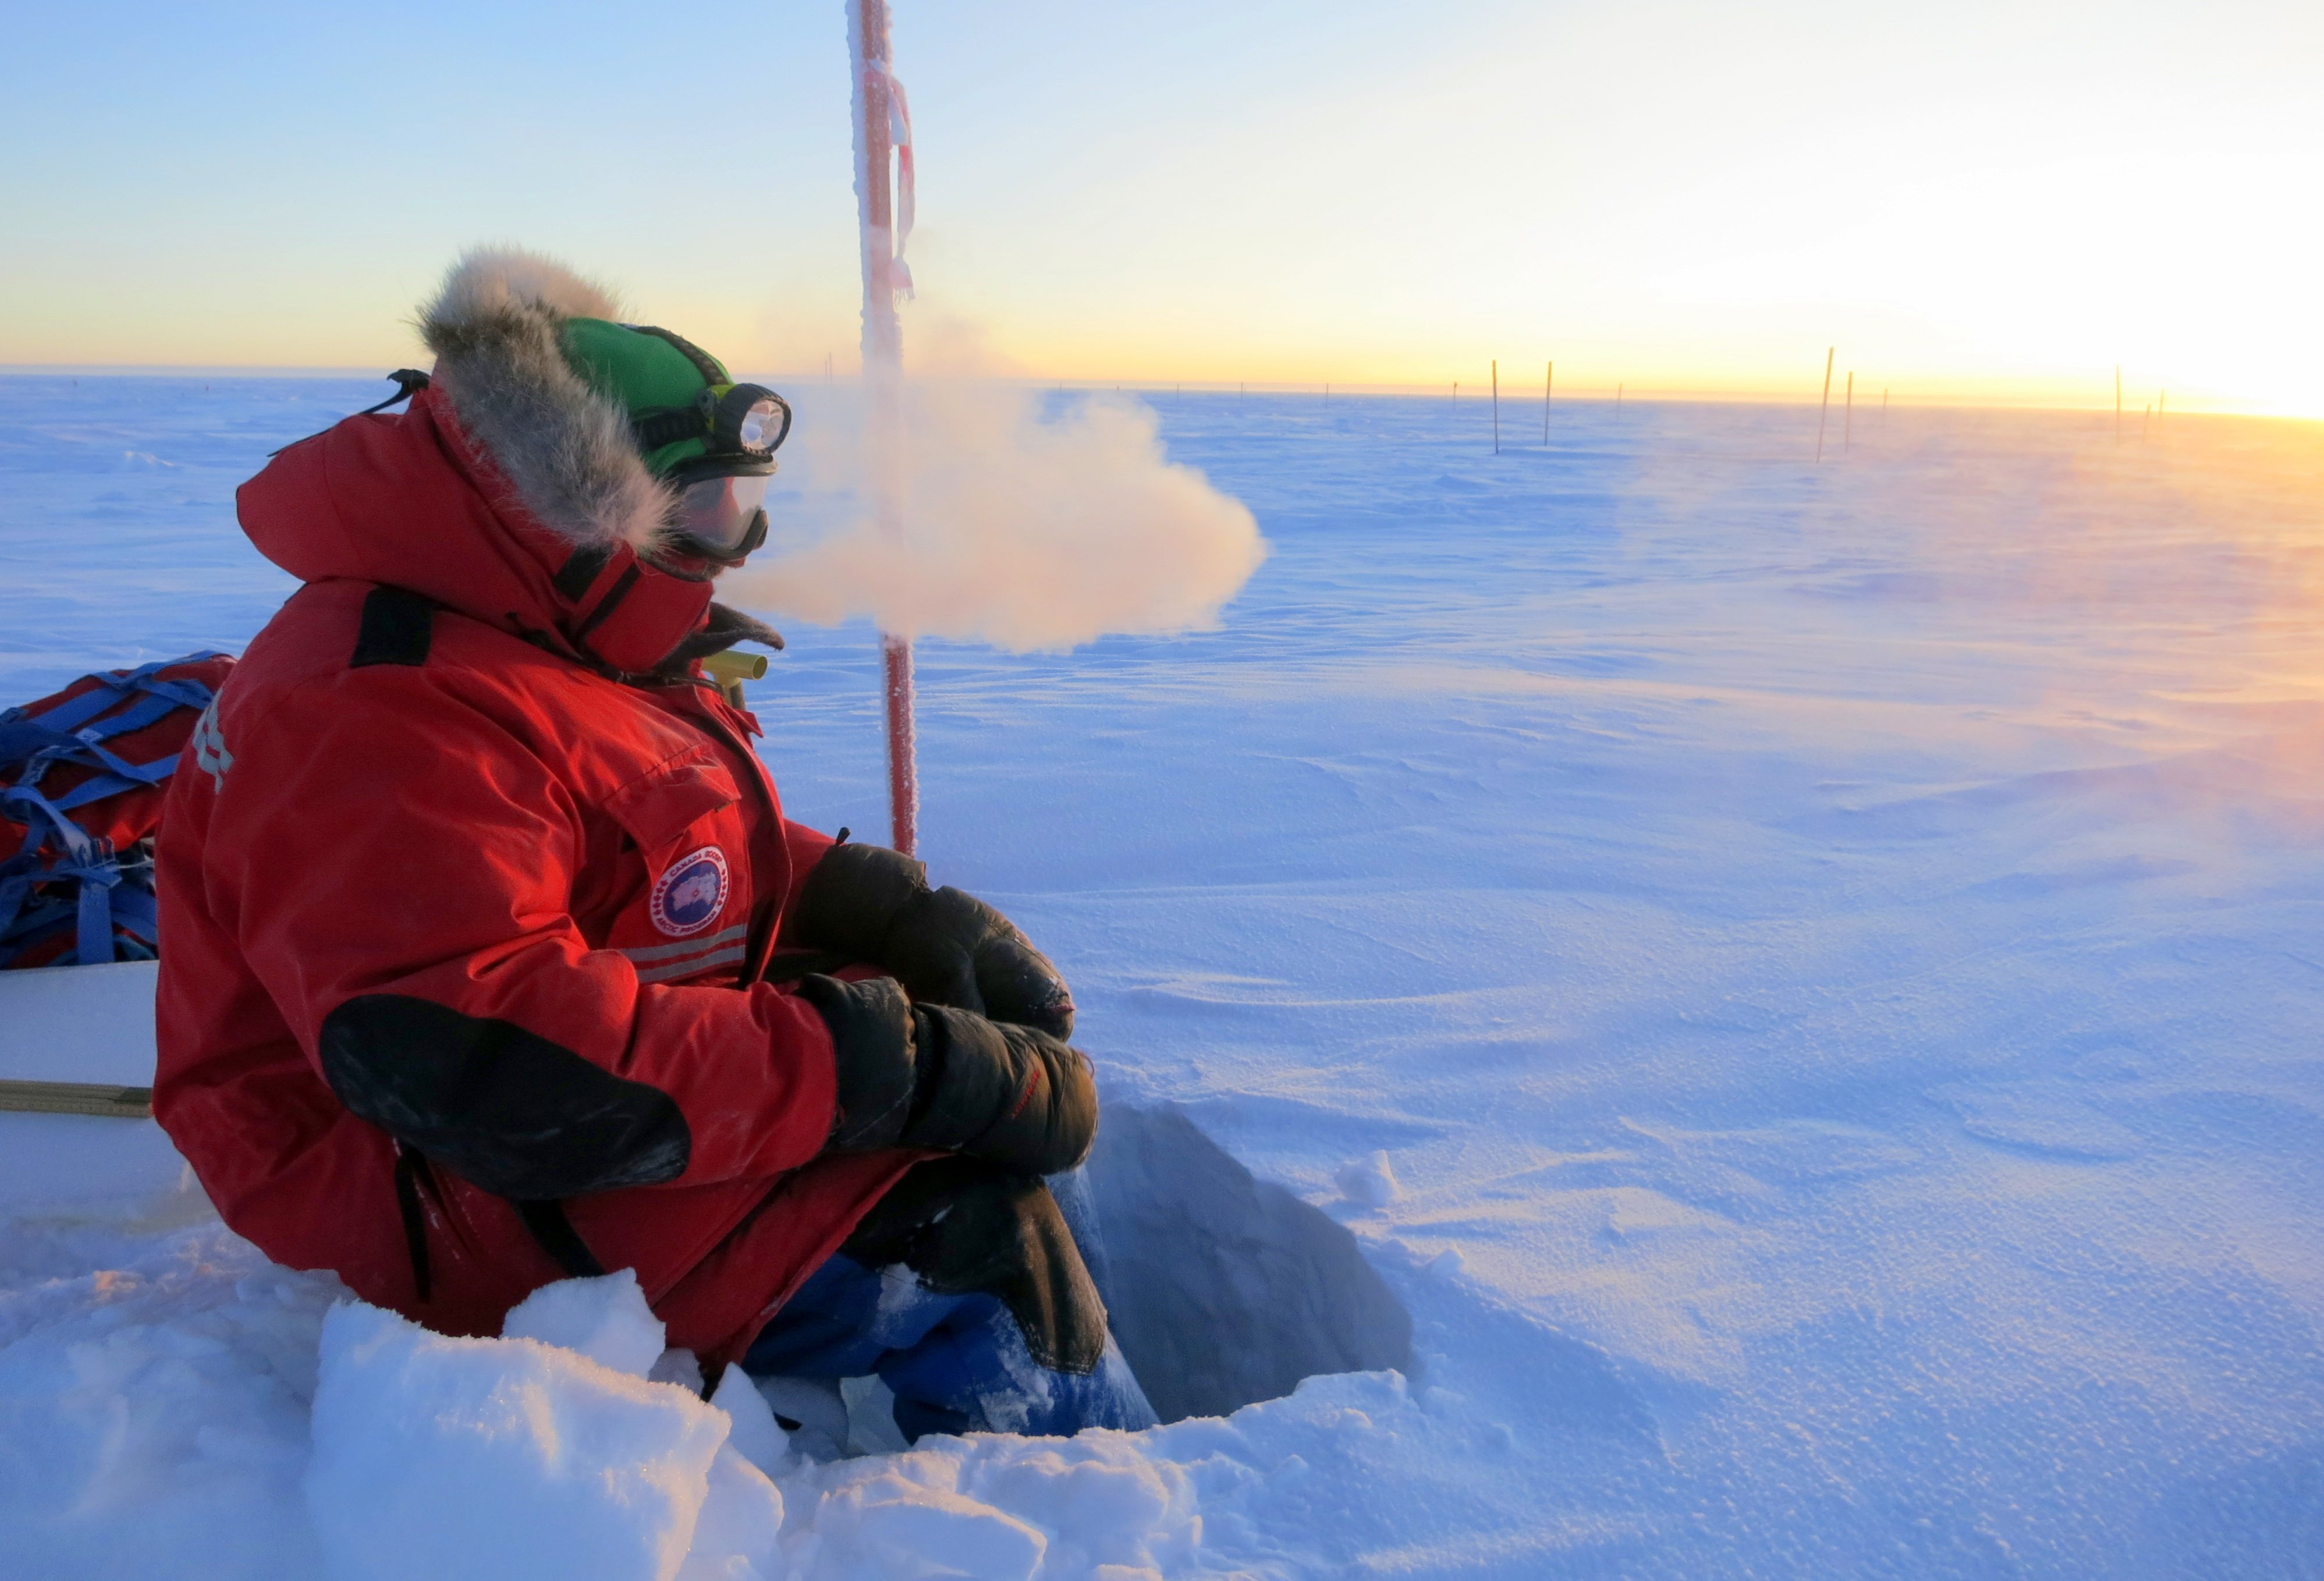 Space in Images - 2012 - 11 - Concordia crew in the cold